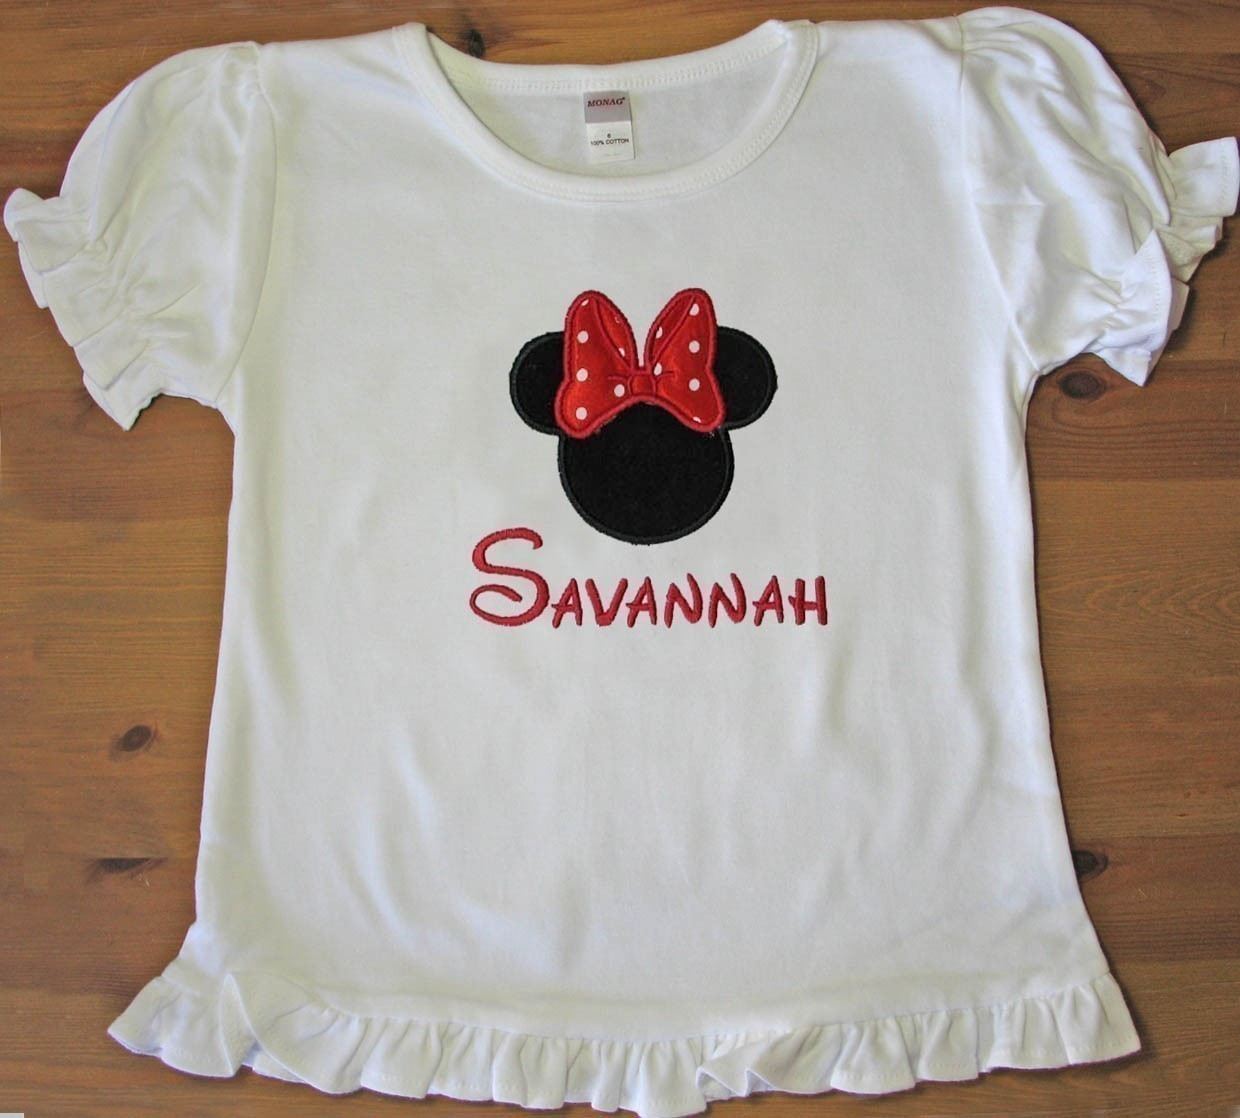 T-shirt printing and Embroidery Services